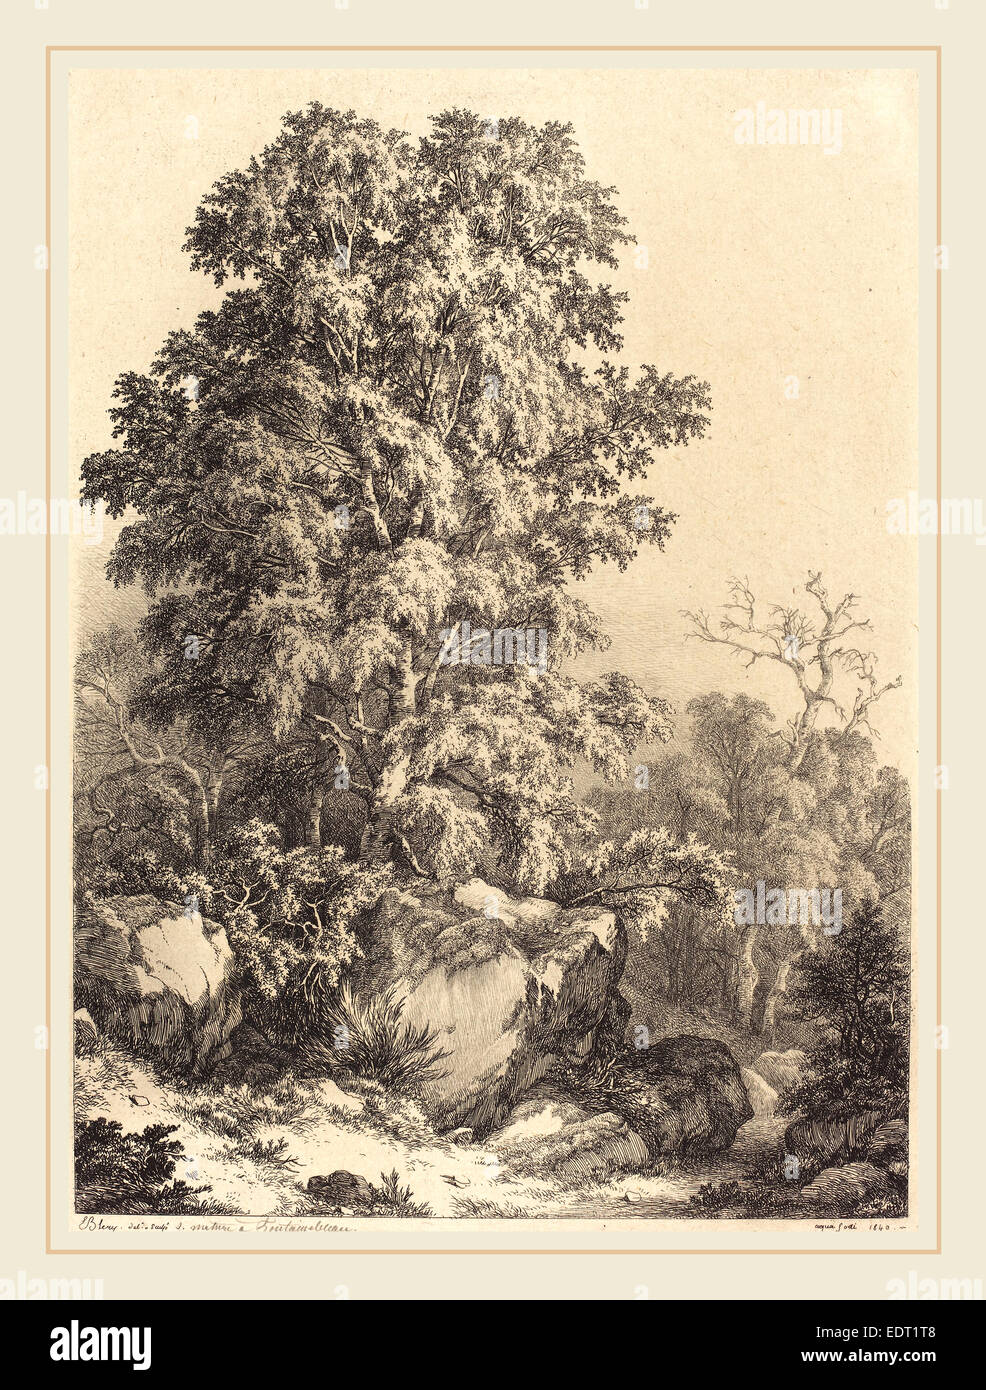 Eugène Bléry (French, 1805-1887), Beech Grove, 1840, etching with drypoint and roulette on chine collé - Stock Image